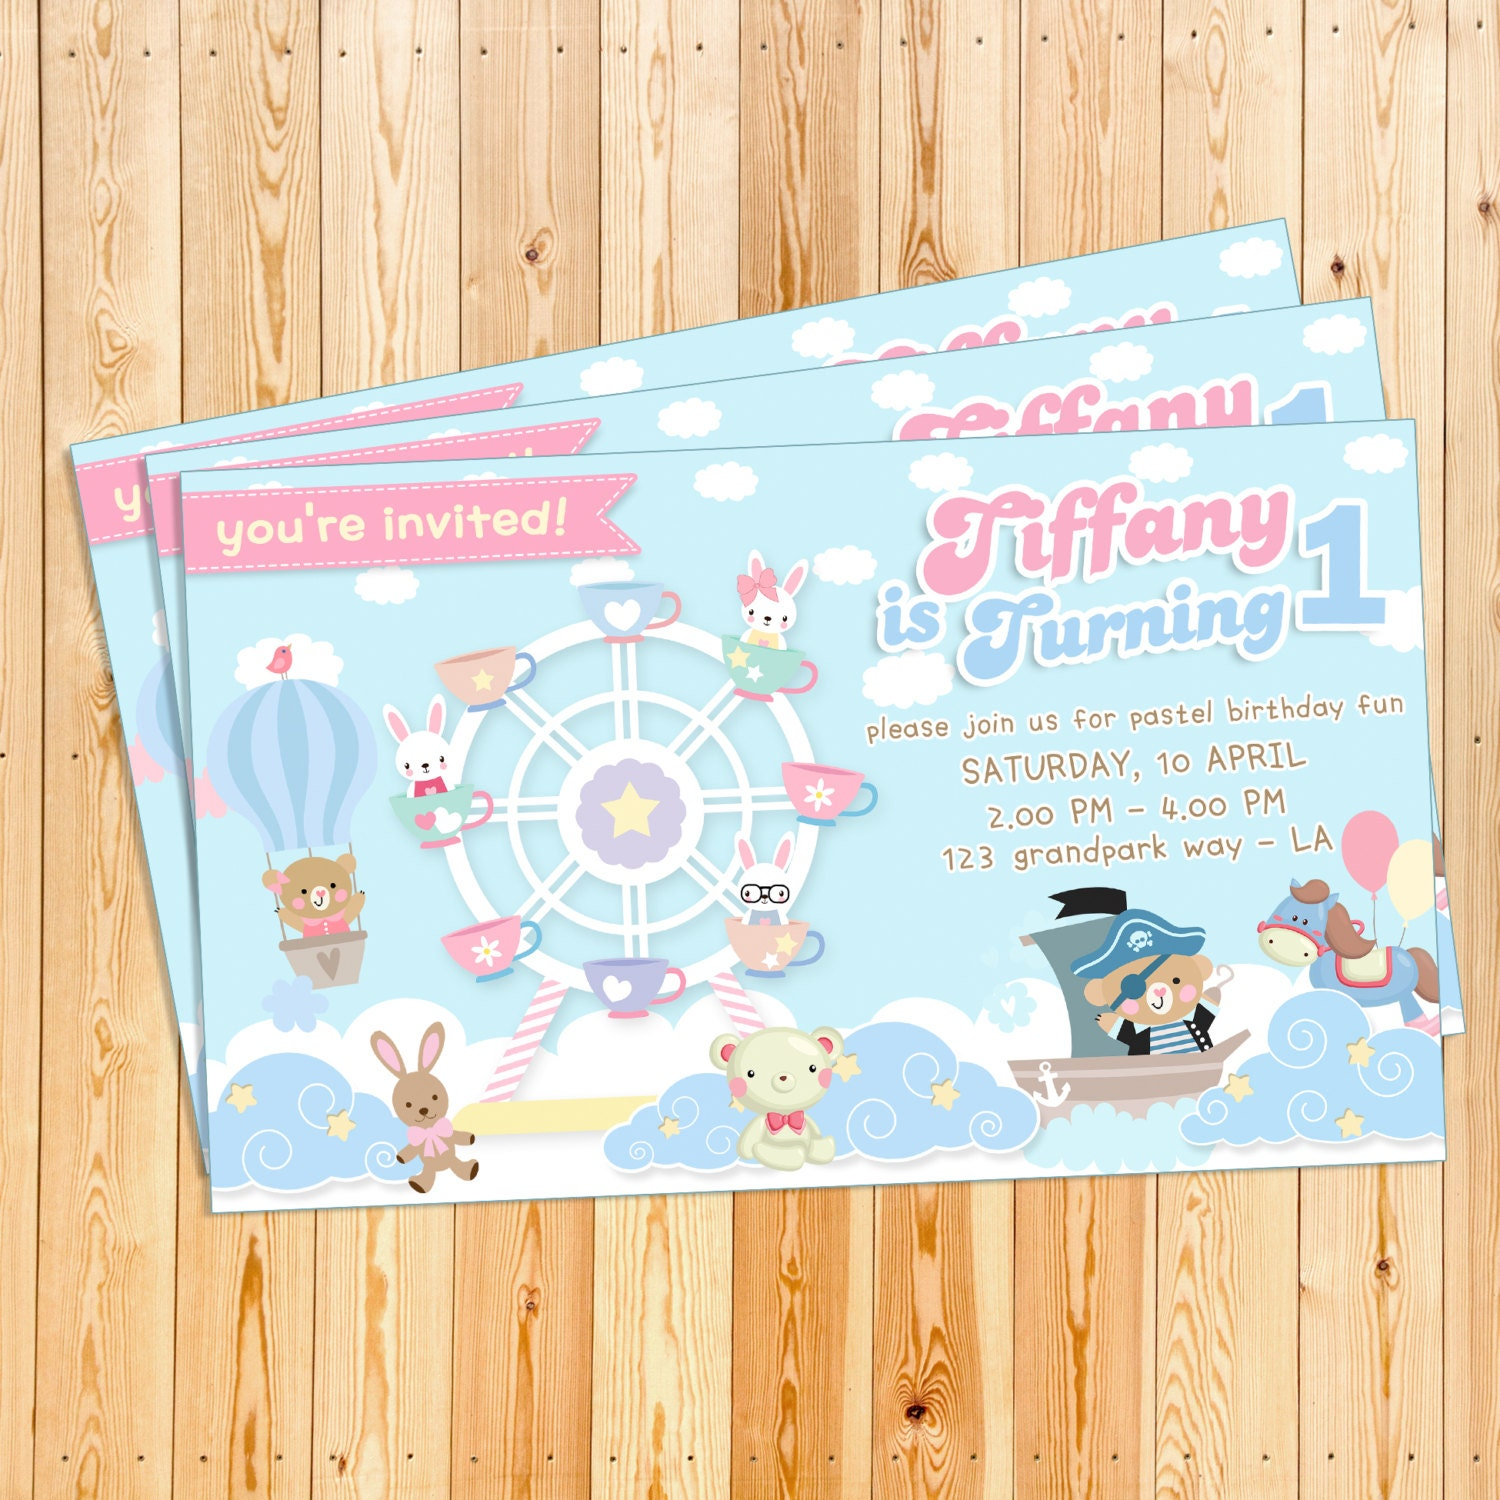 Editable instant download diy birthday party invitation template editable instant download diy birthday party invitation template cute cartoon animal in soft blue bear filmwisefo